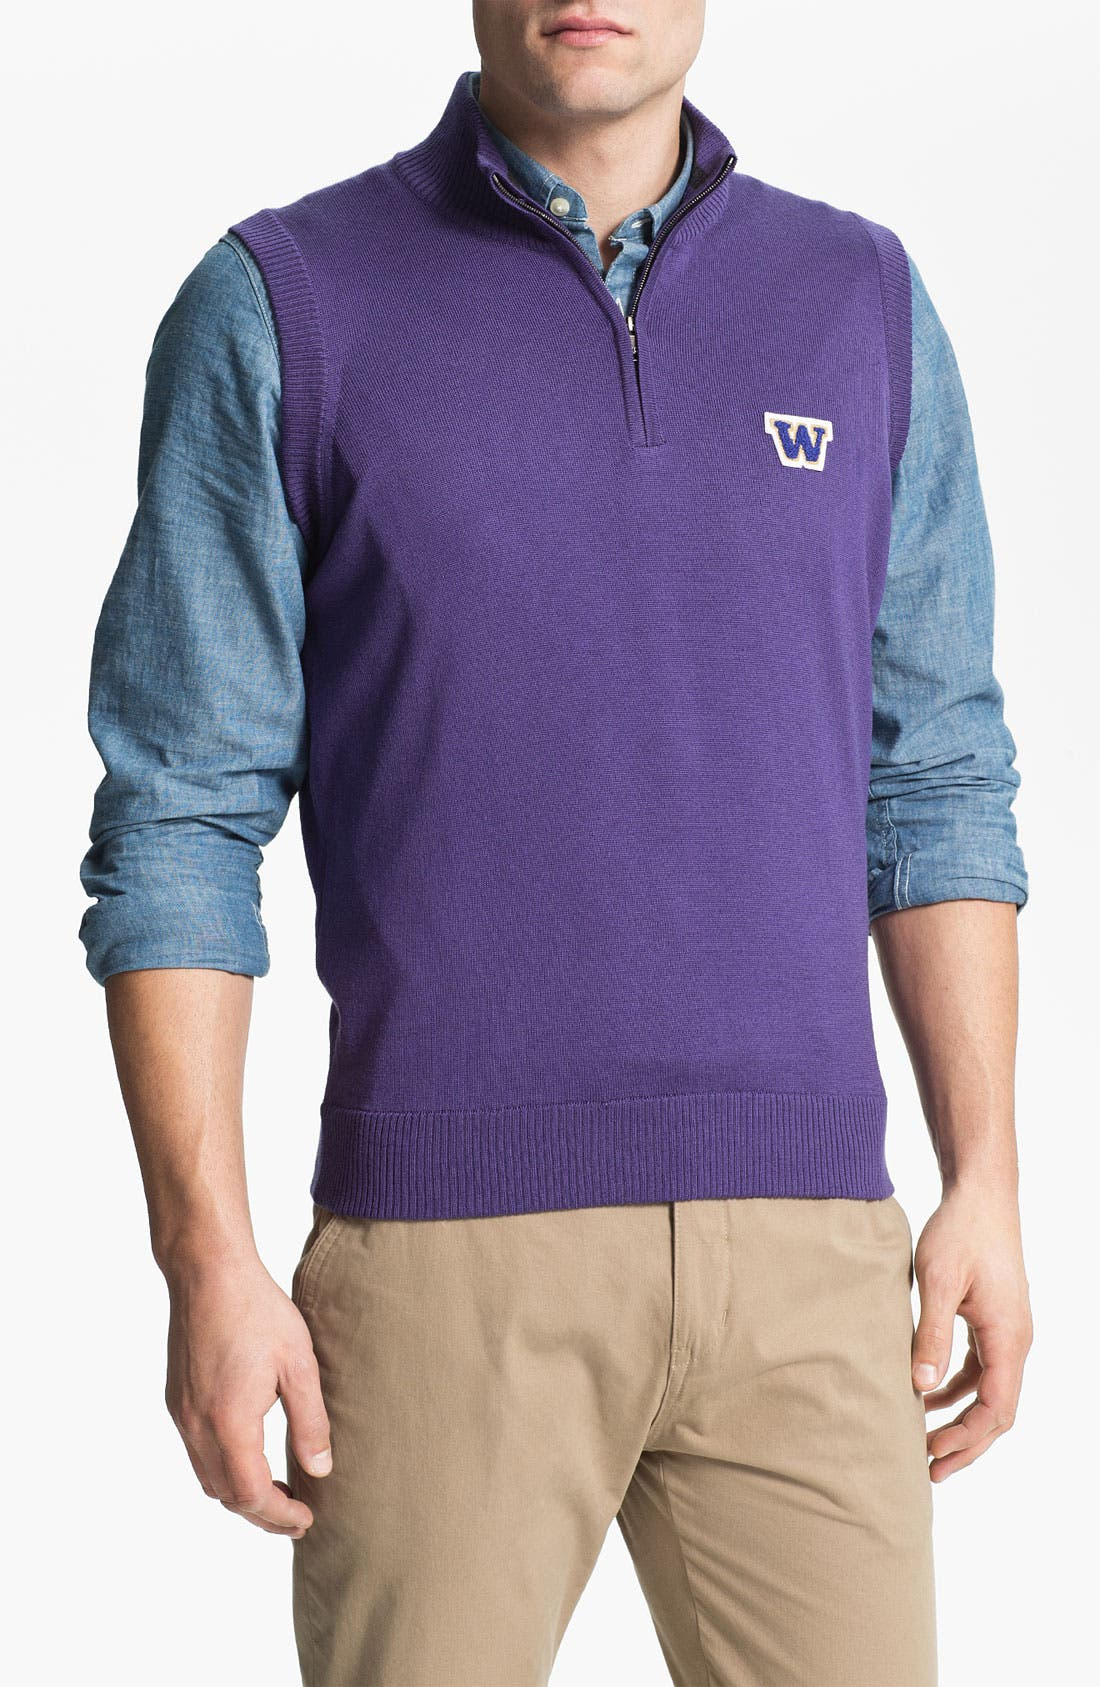 Main Image - WASHINGTON 1/4 ZIP SWEATER VEST